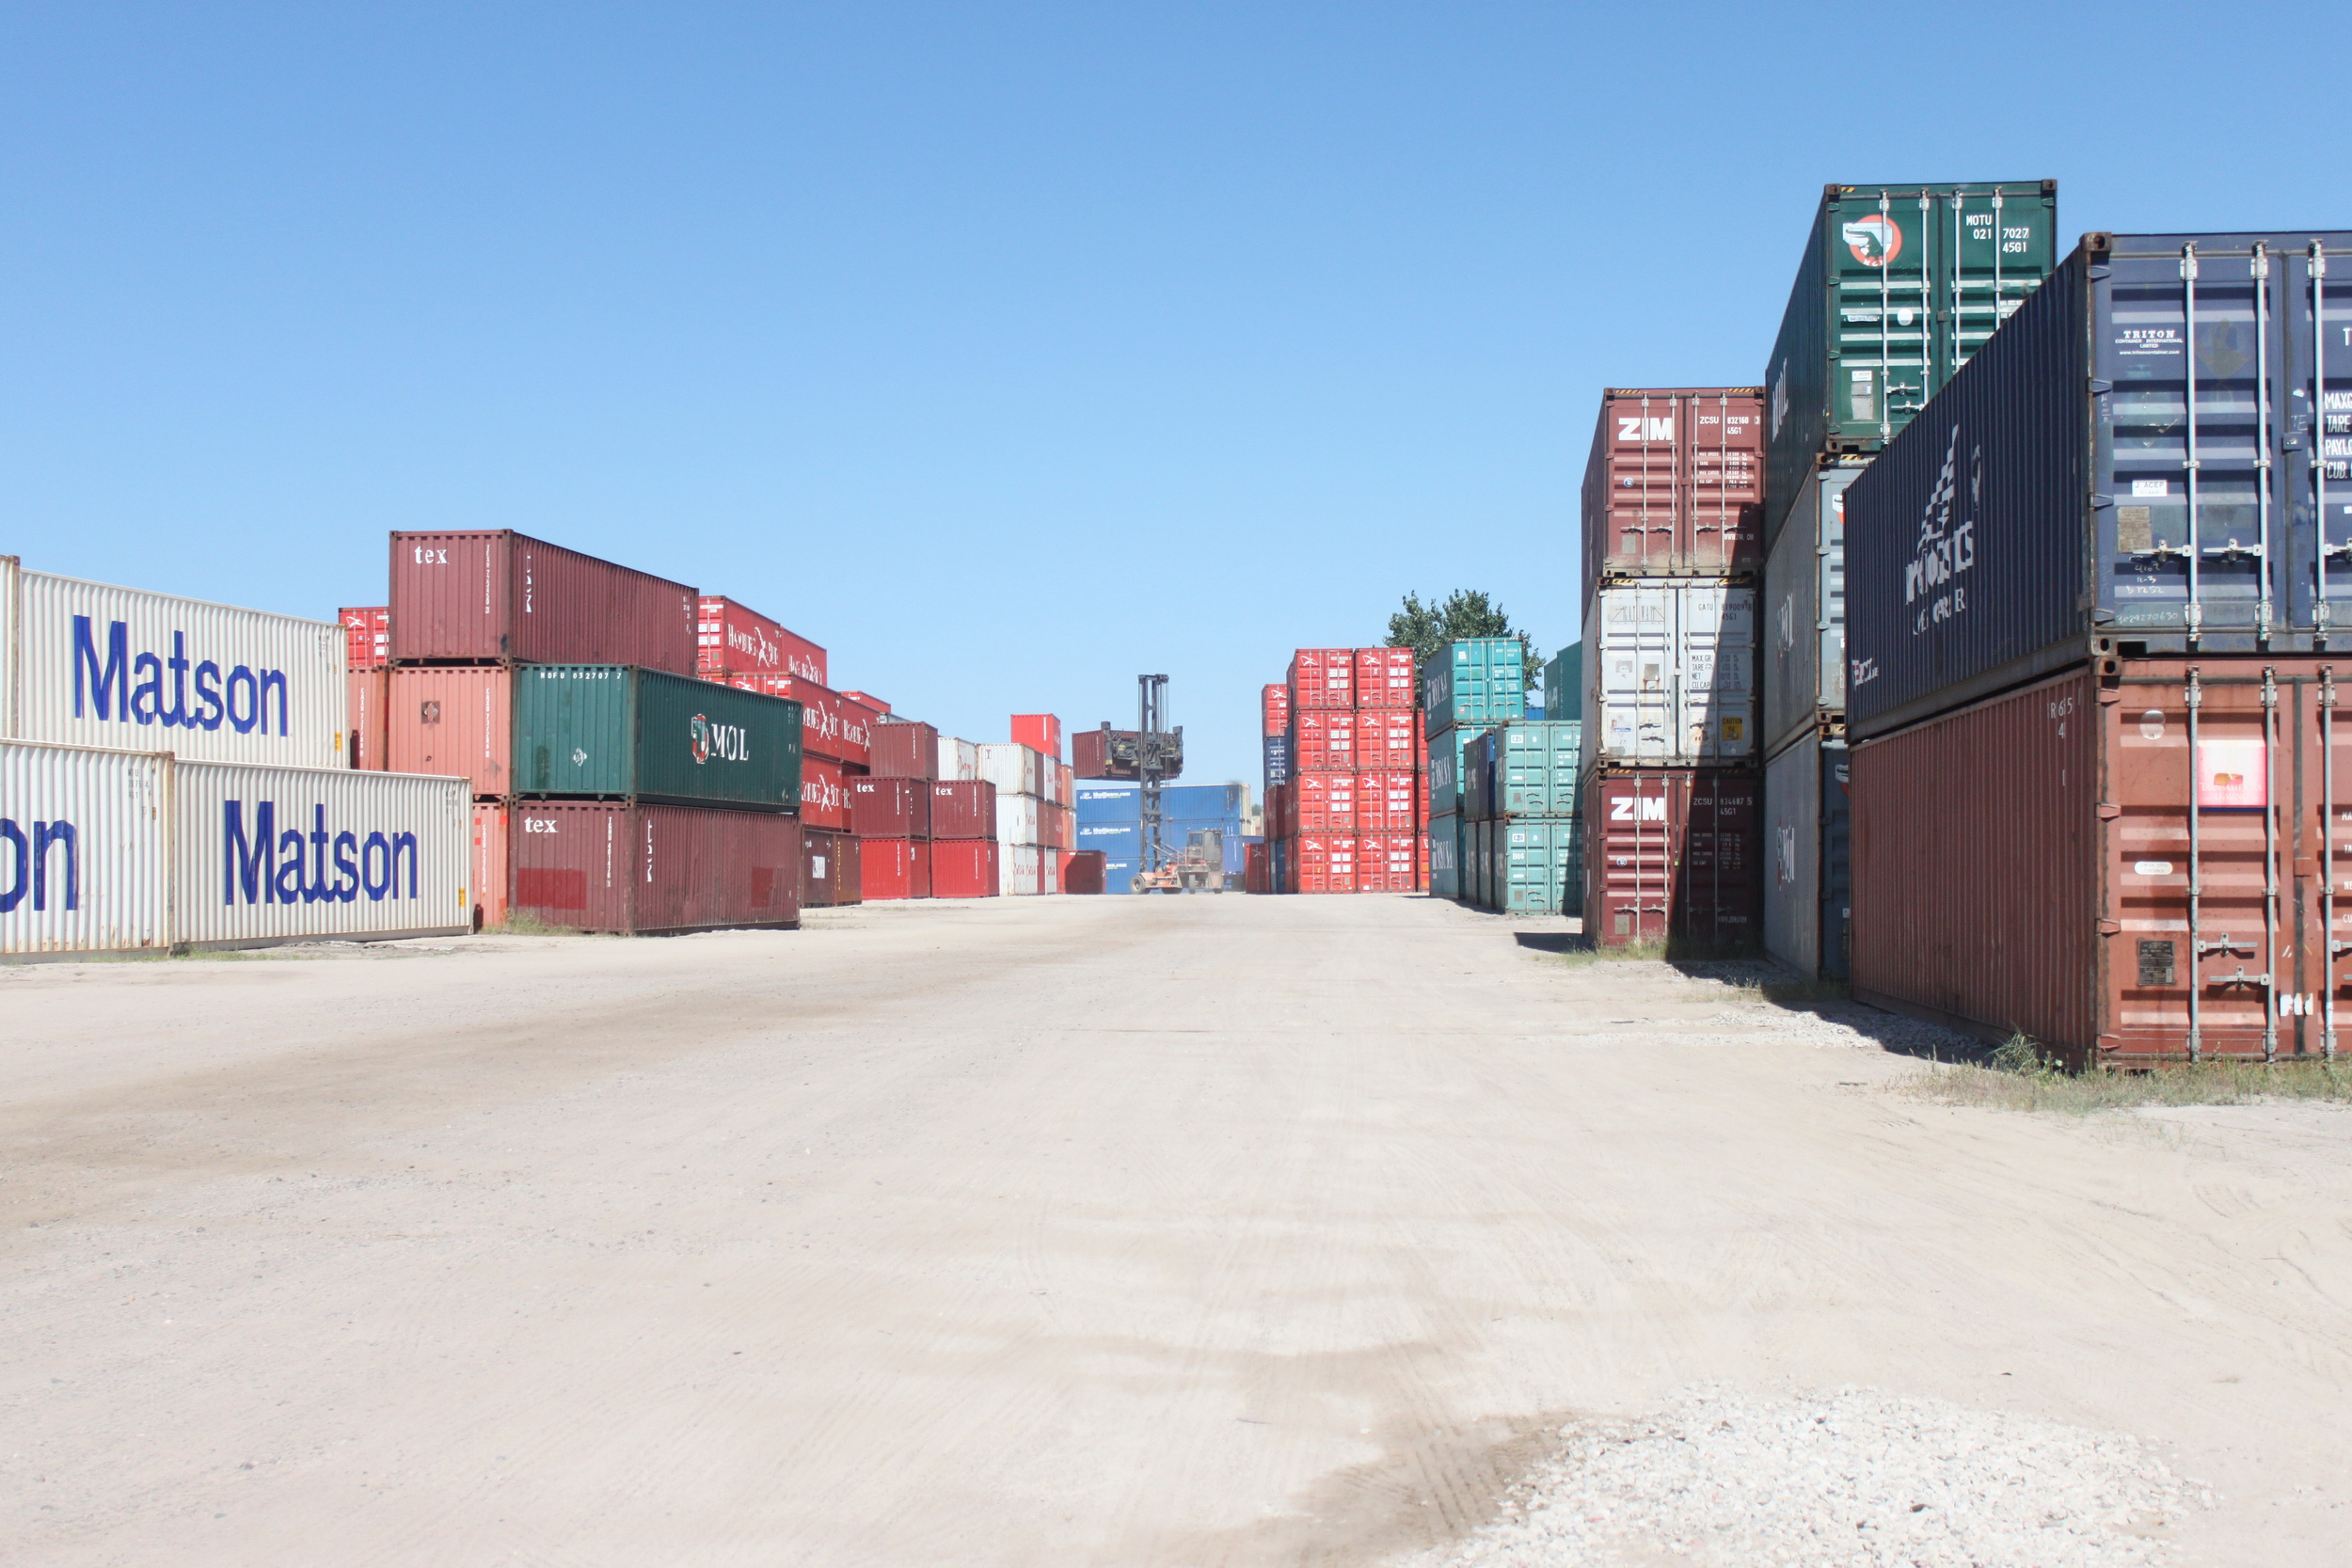 These containers in a container depot are all slated to transport goods to another country